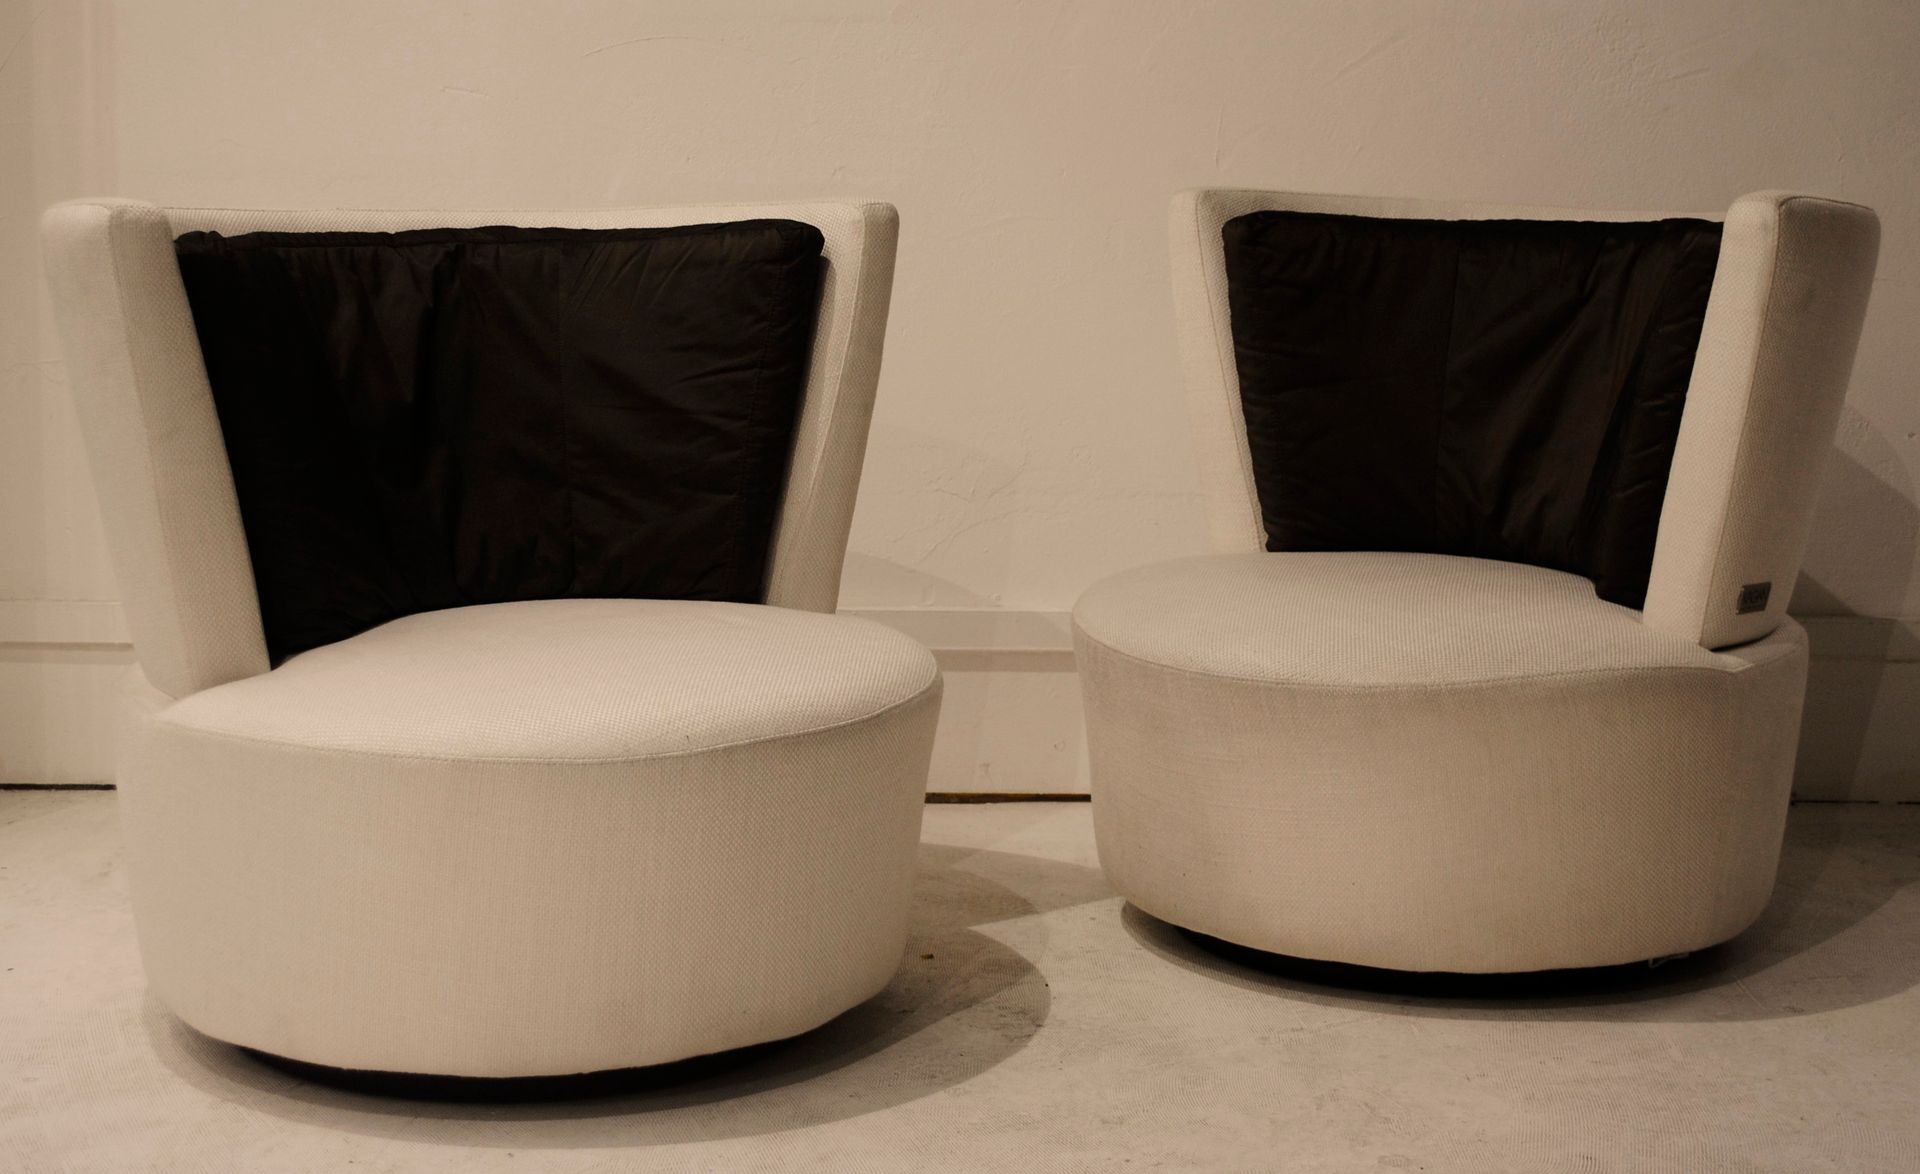 Ivory and Brown Swivel Chairs by Vladimir Kagan Set of 2 for sale